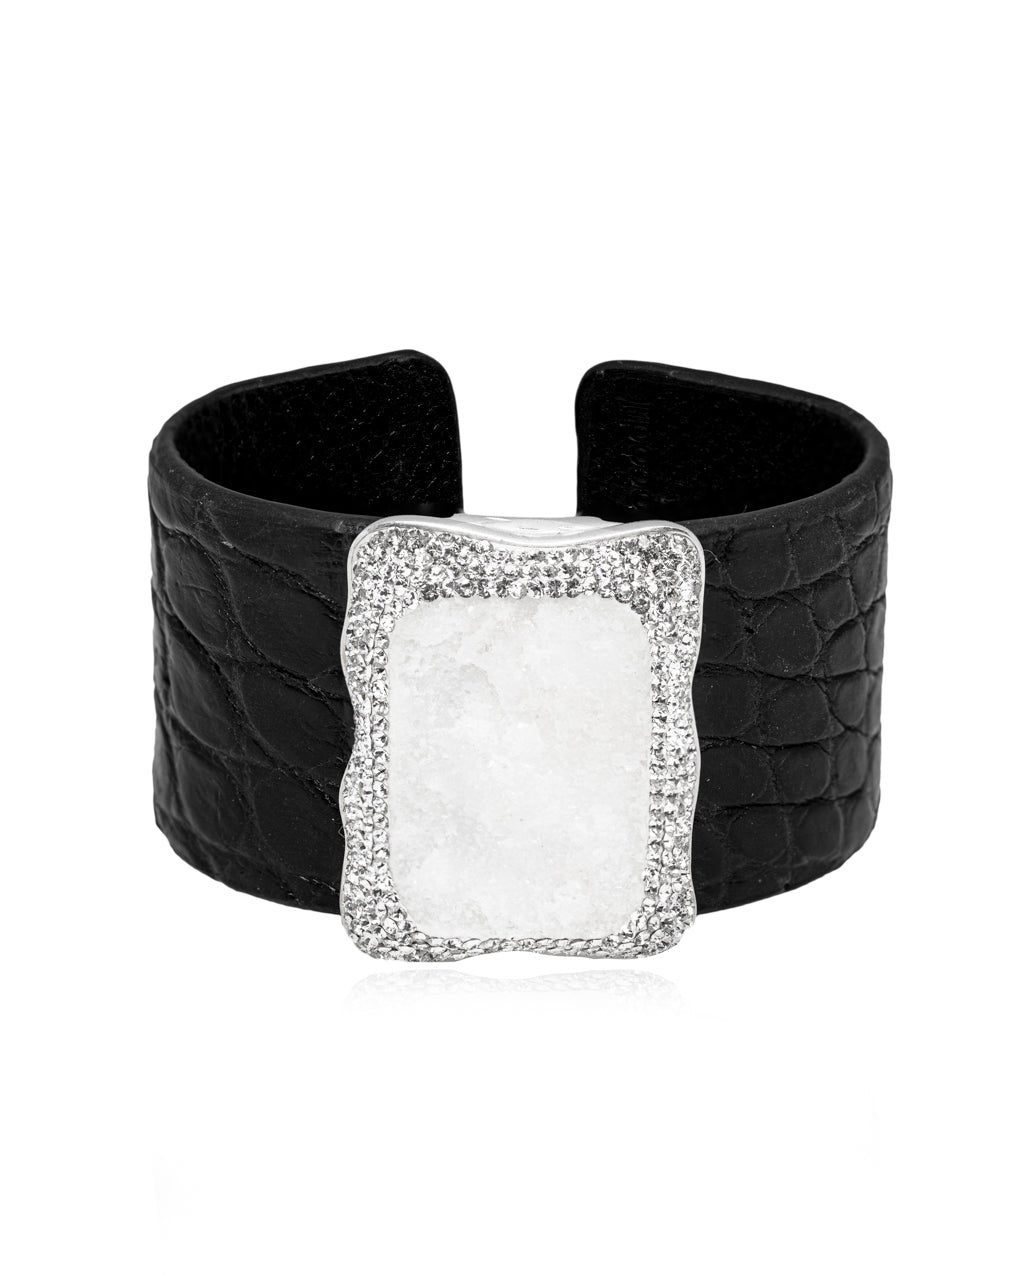 Exotic Gem Cuff White Quartz, Crystal & Black Crocodile